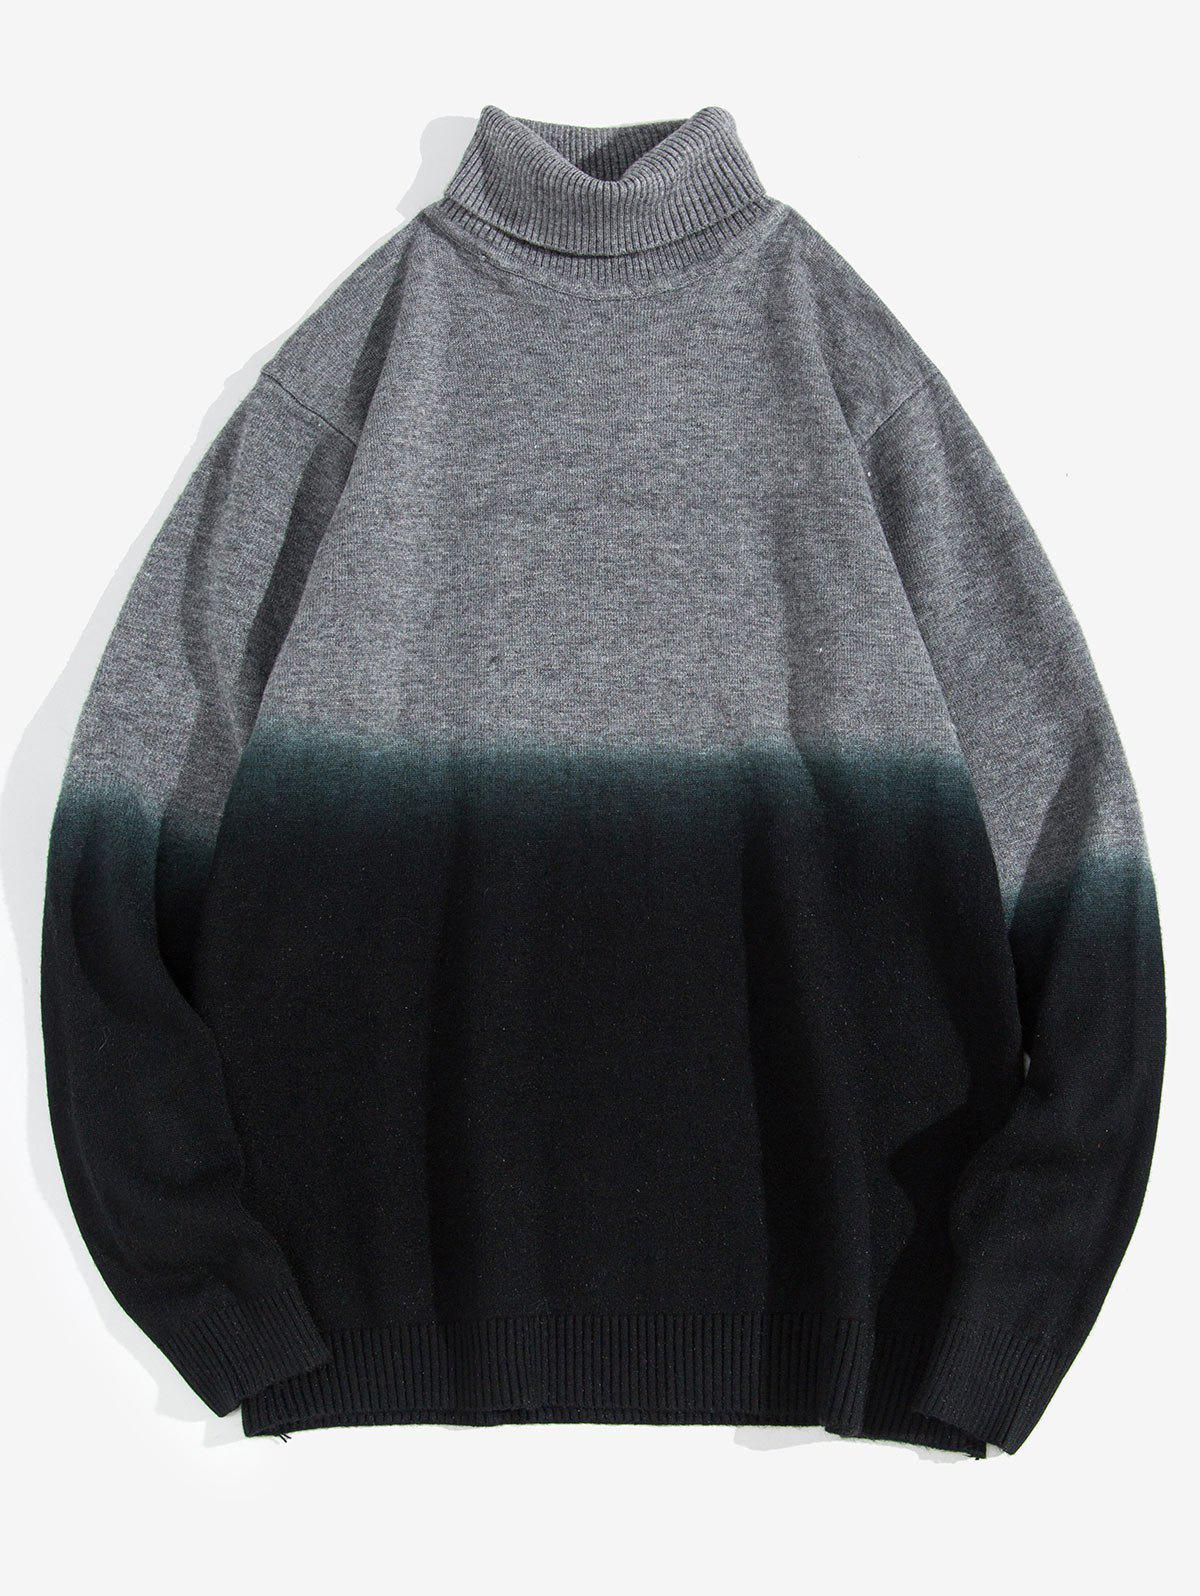 Turtleneck Two-tone Ombre Sweater - GRAY M